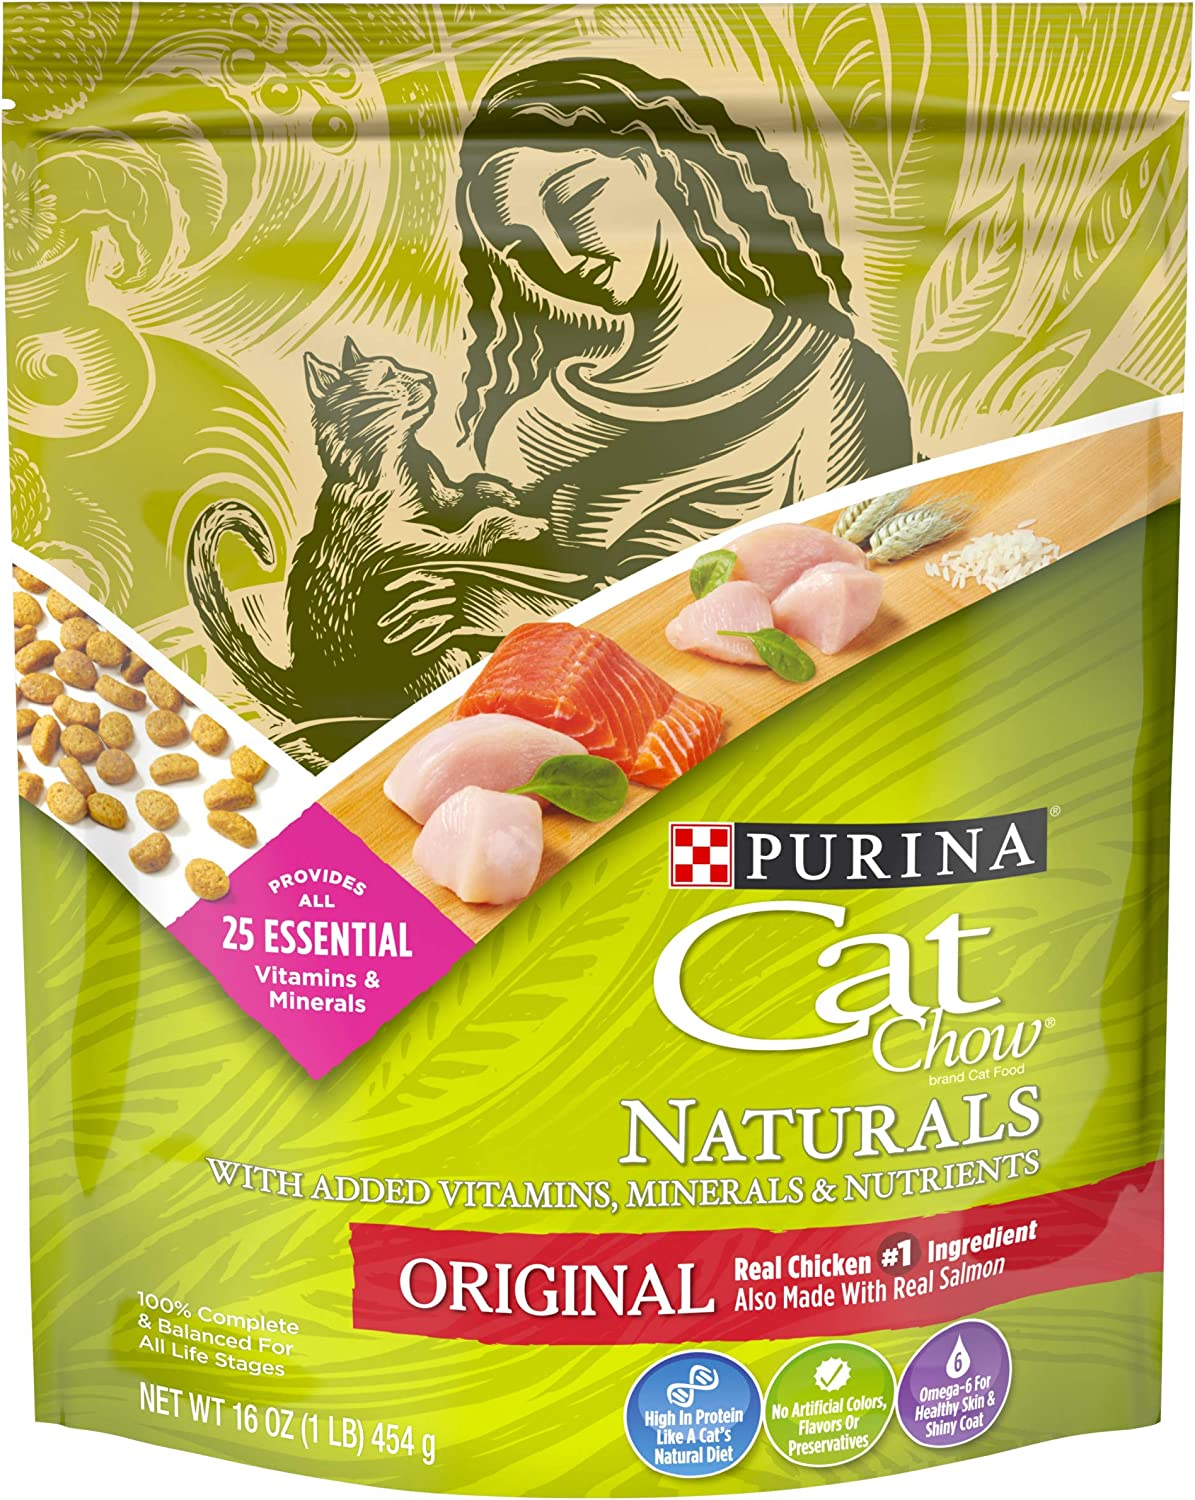 Purina Cat Chow Natural Dry Cat Food, Naturals Original - (6) 16 oz. Pouches